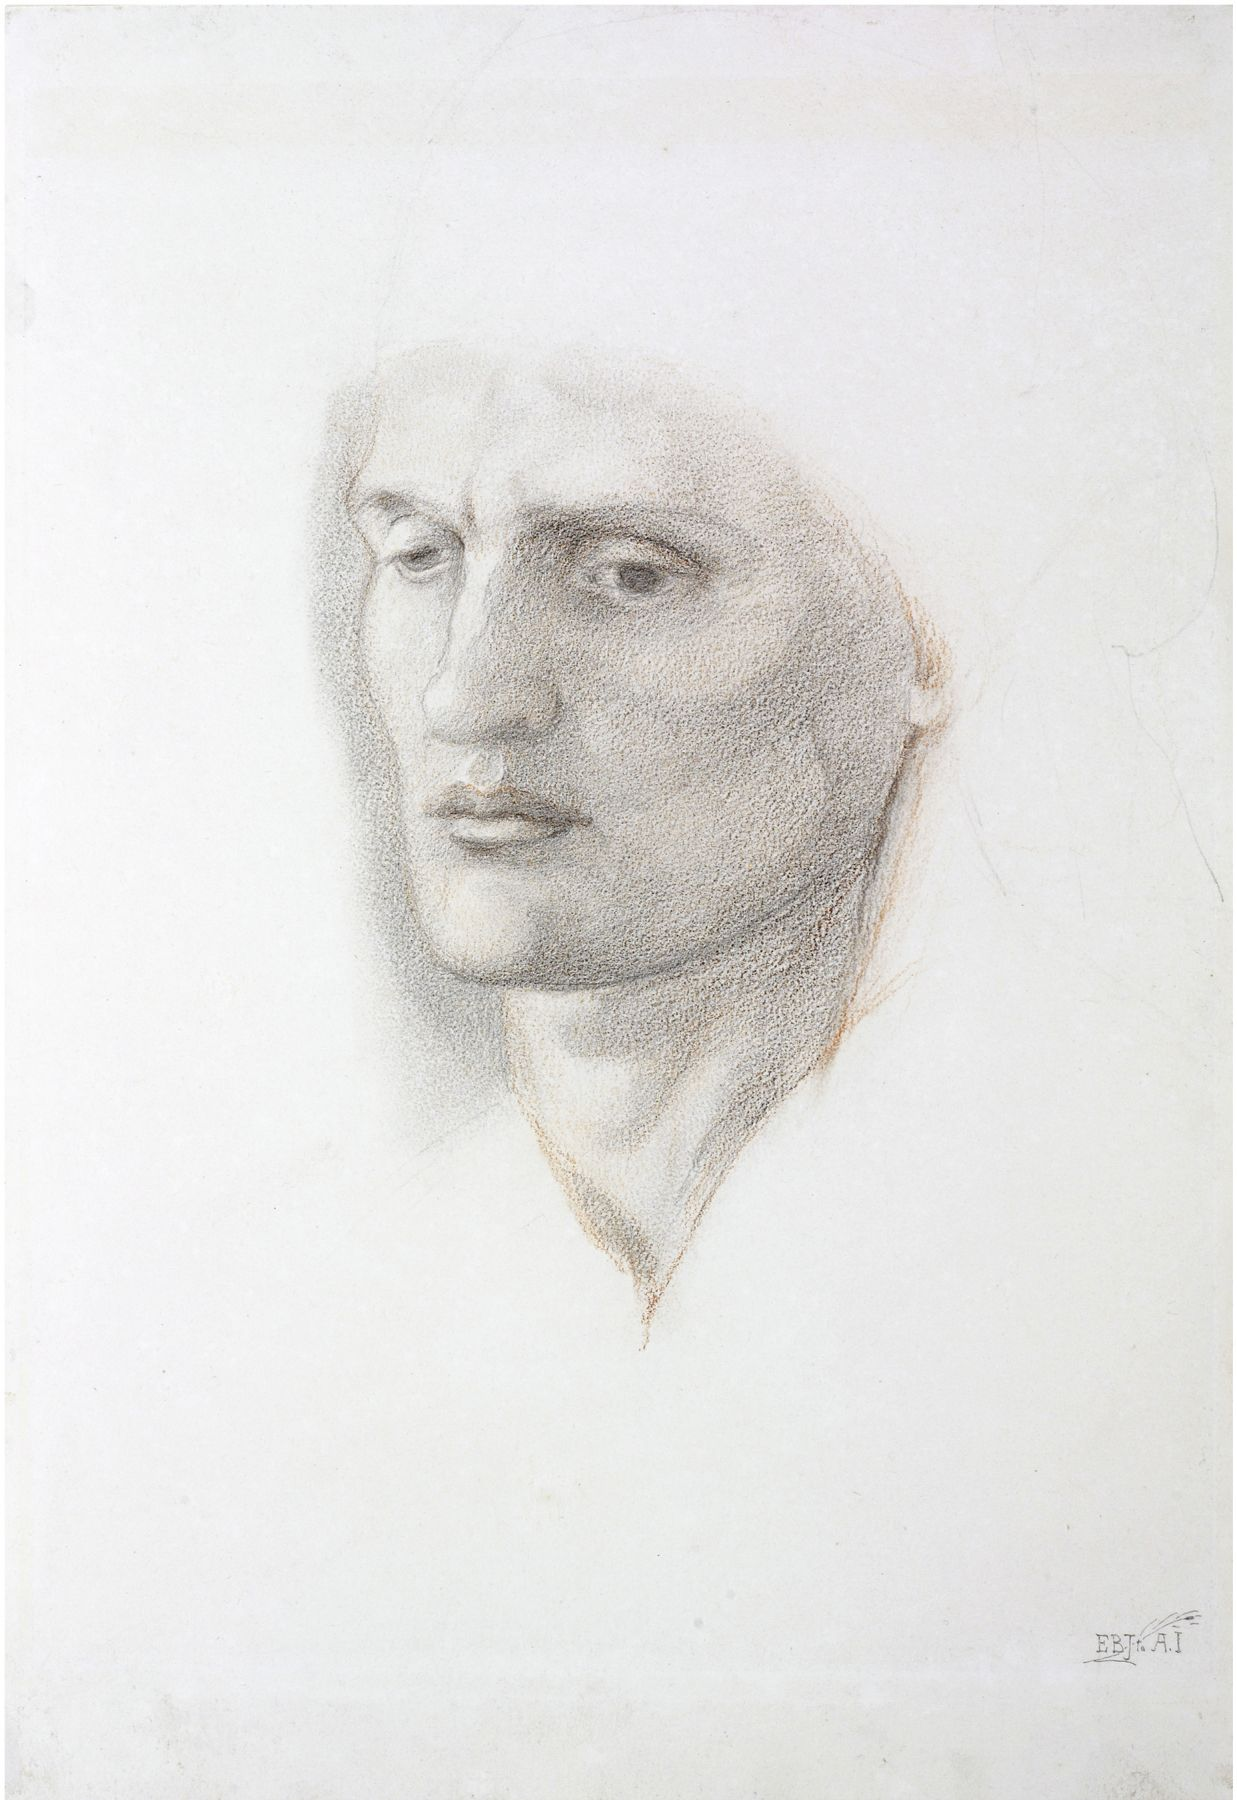 Edward Coley Burne-Jones  Portrait Head of a Man  Red and black chalk on paper 15 1/4 x 11 3/4 inches